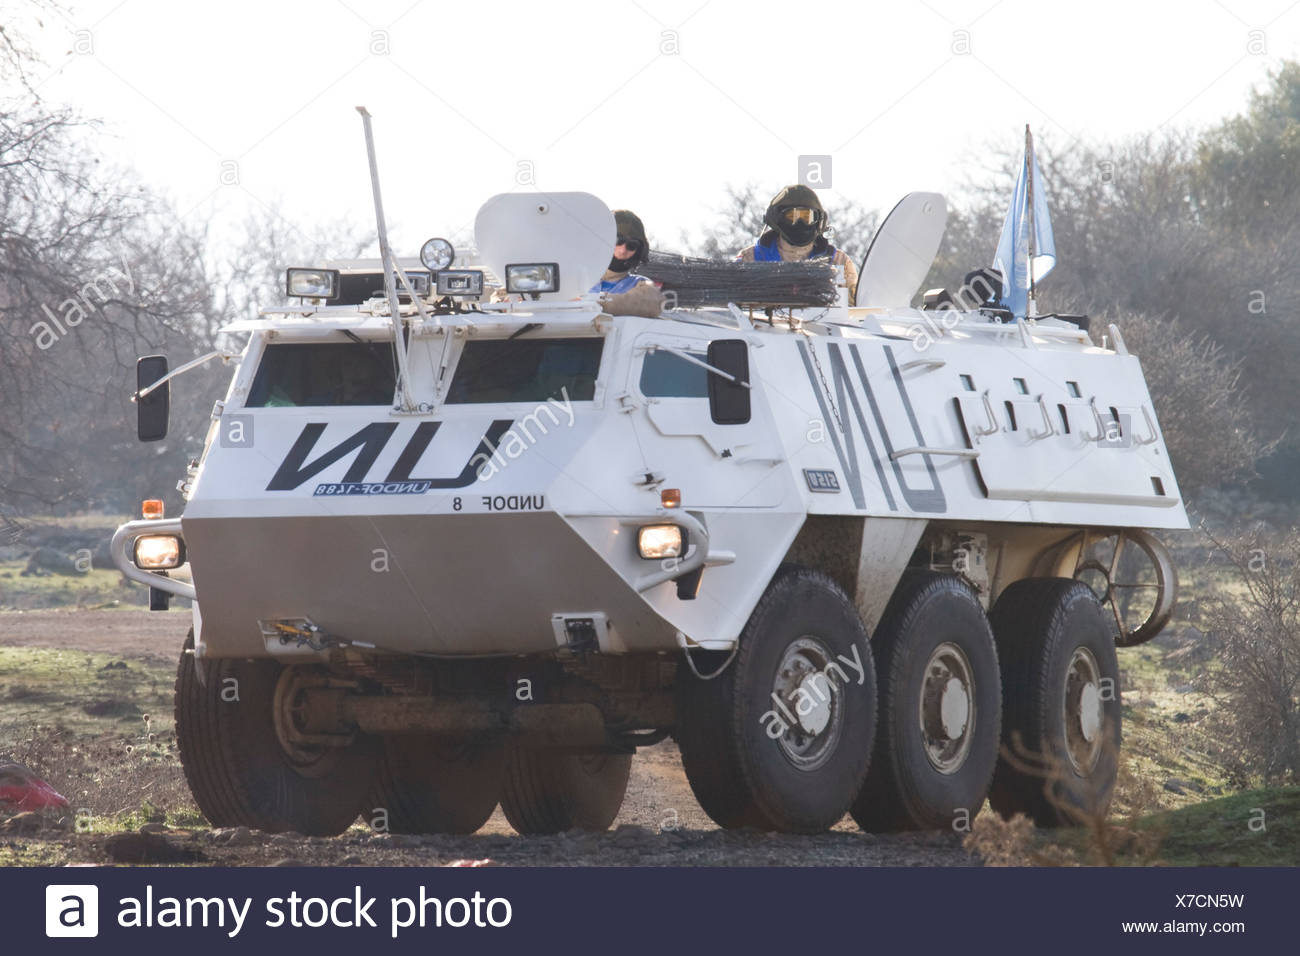 Israel Golan Heights A U N armored vehicle on the Israeli Syrian border - Stock Image